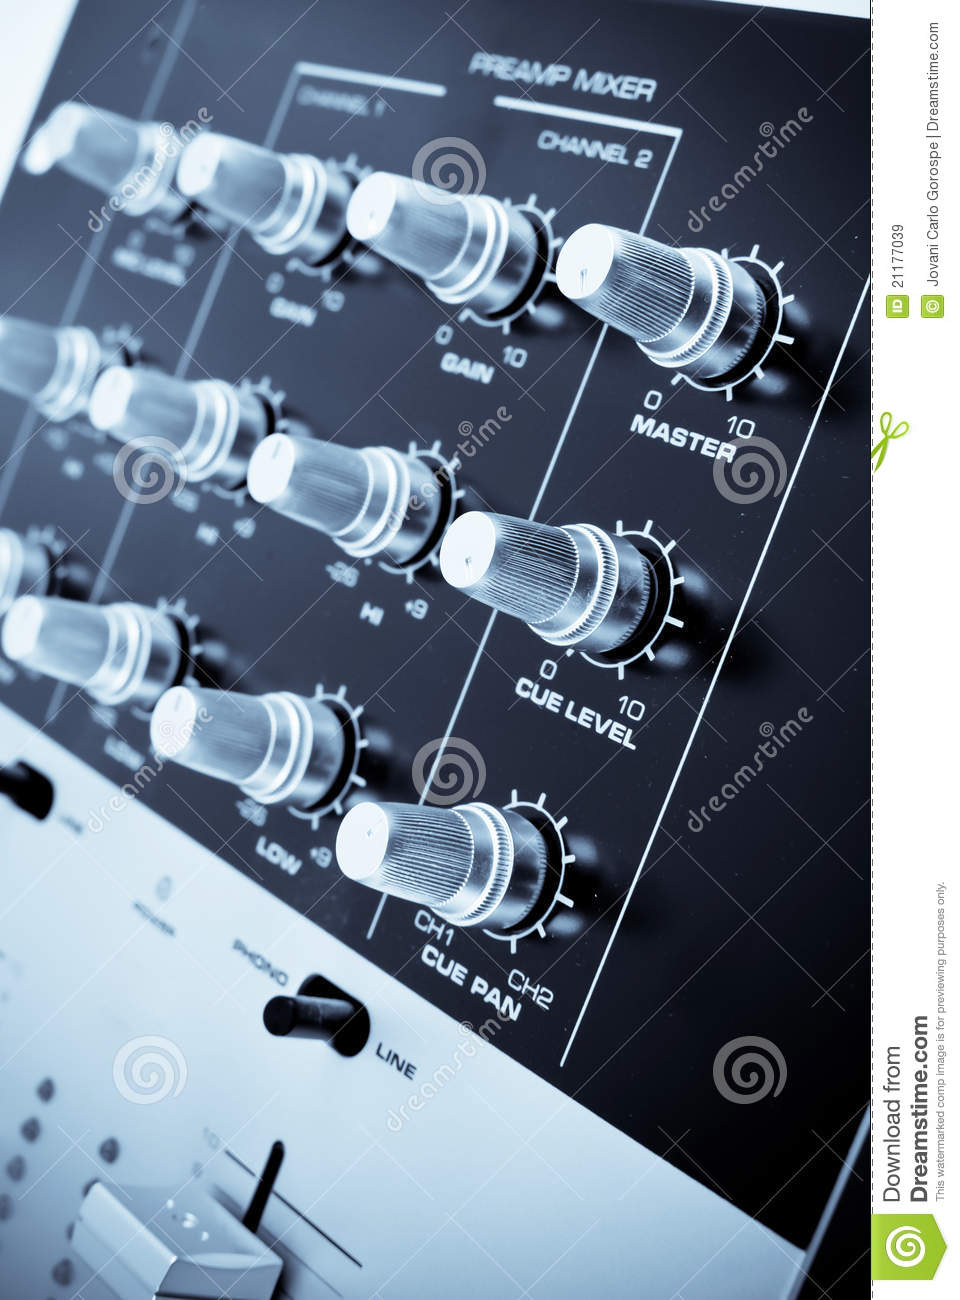 how to connect preamp to mixer